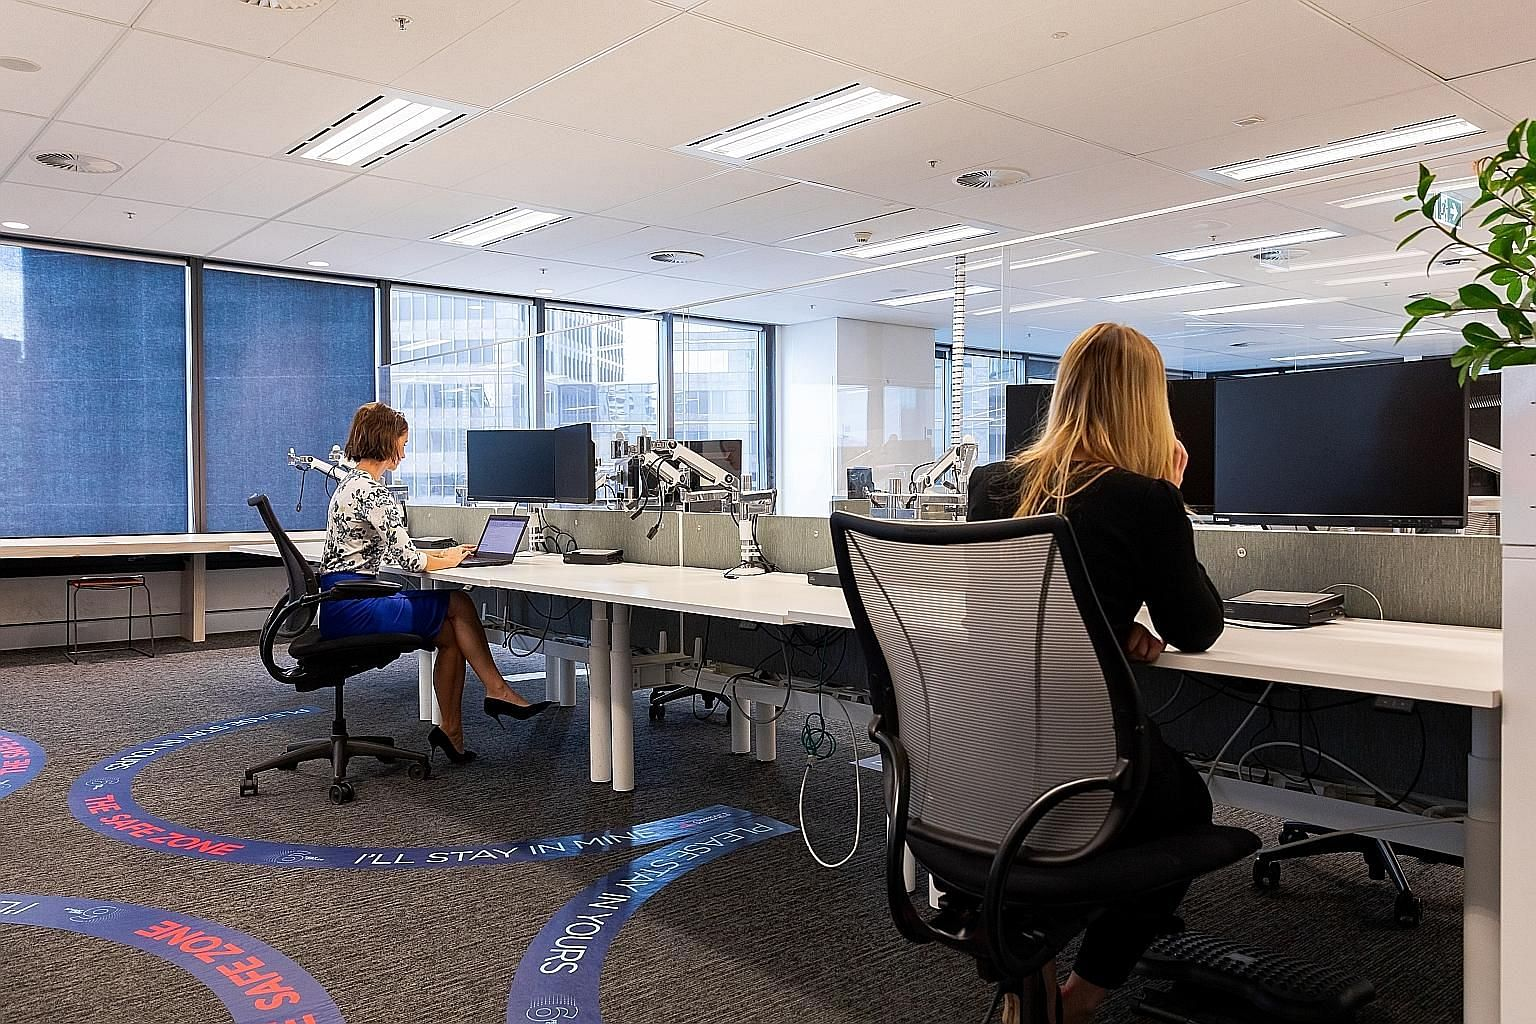 Cushman & Wakefield has pioneered an office concept in Amsterdam and Sydney that aims to uphold social distancing, reduce overall touch points and promote one-way circulation and personal hygiene. Employees work within their own safe zones which are